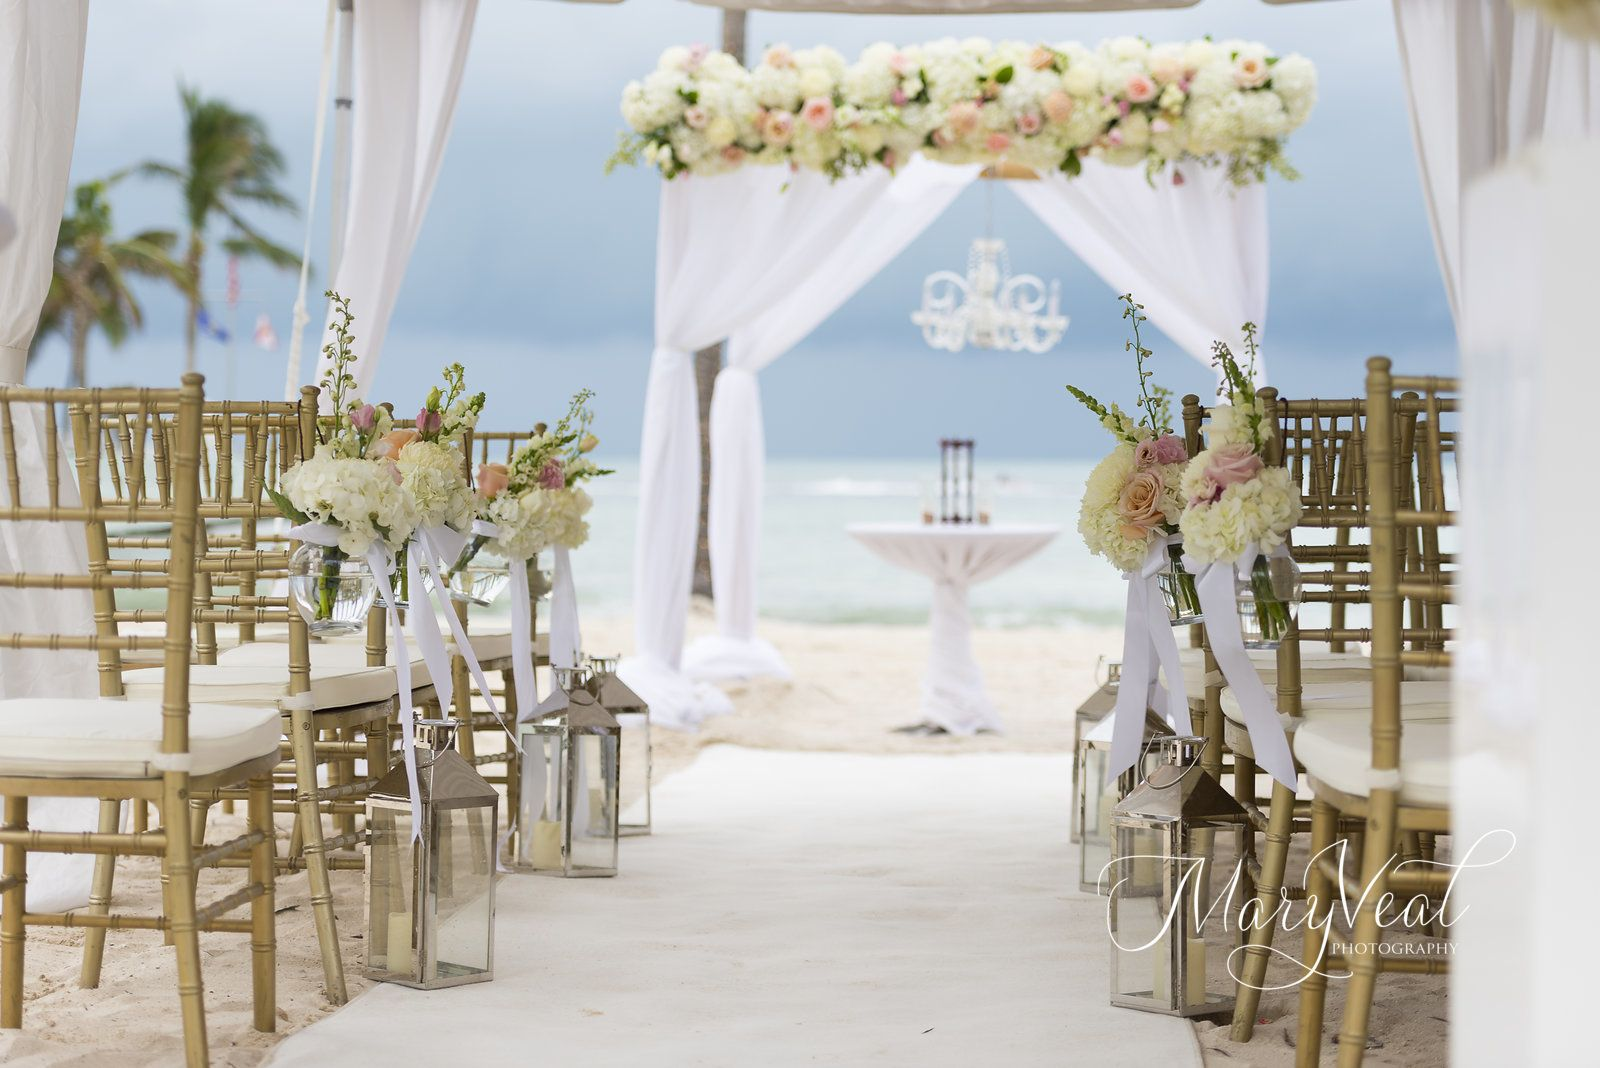 Beautiful ceremony decor at southernmost beach resort